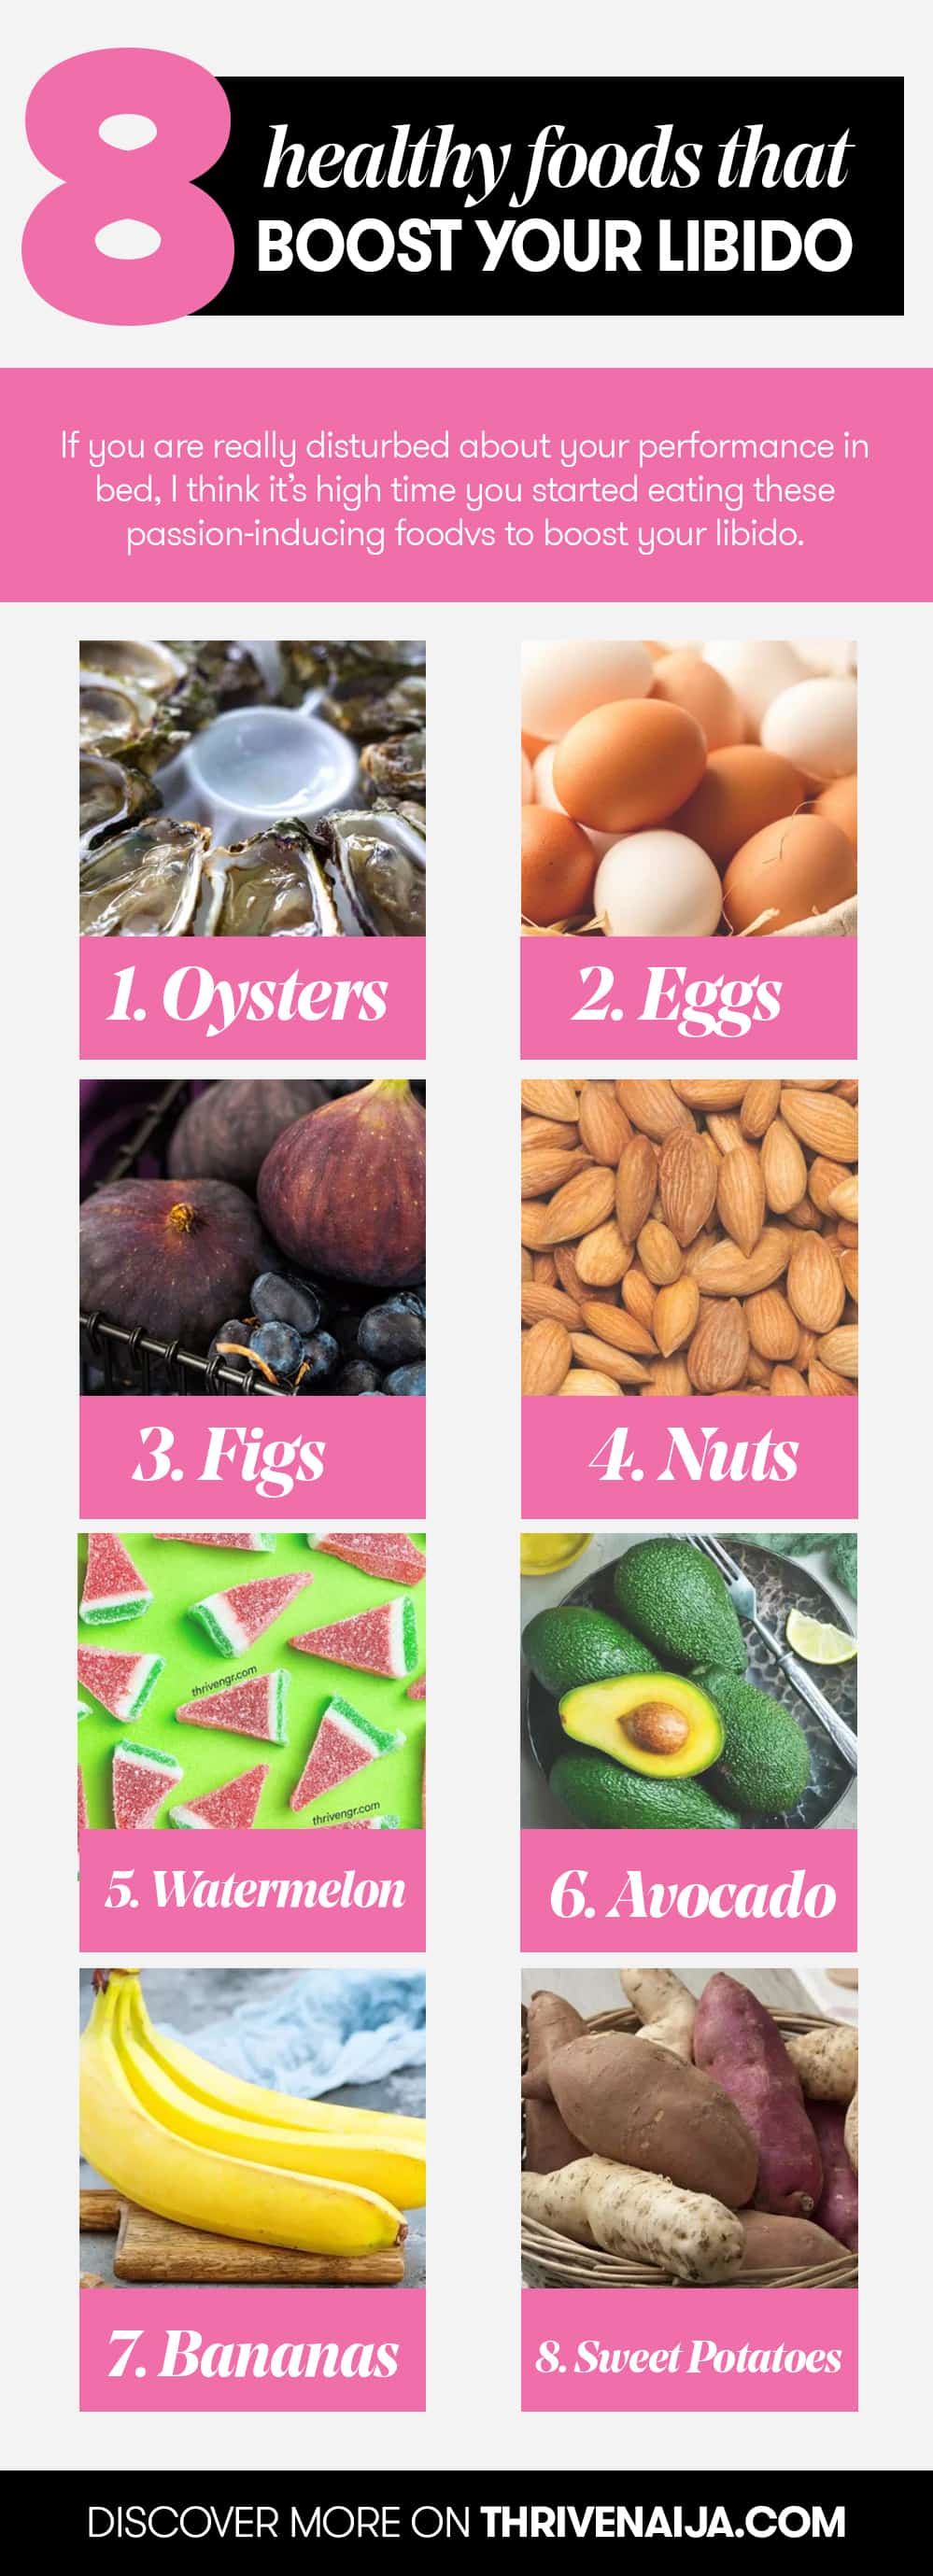 libido boosting foods to boost your sex drive [infographic]